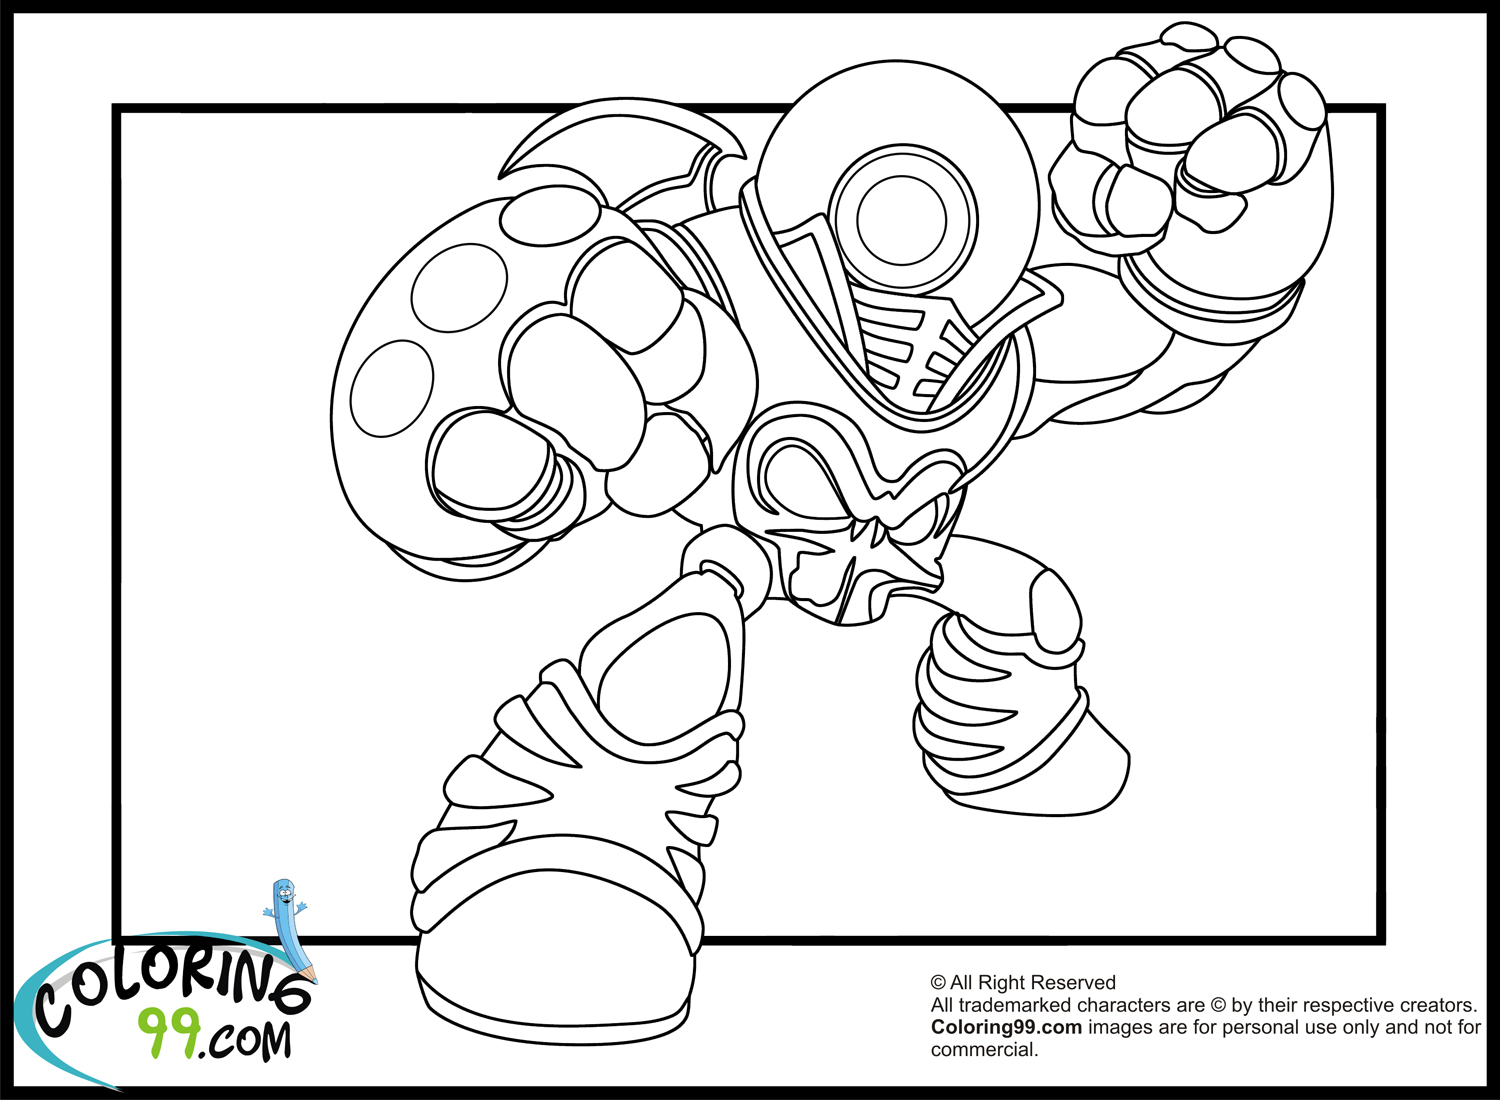 Skylander giant coloring pages download and print for free